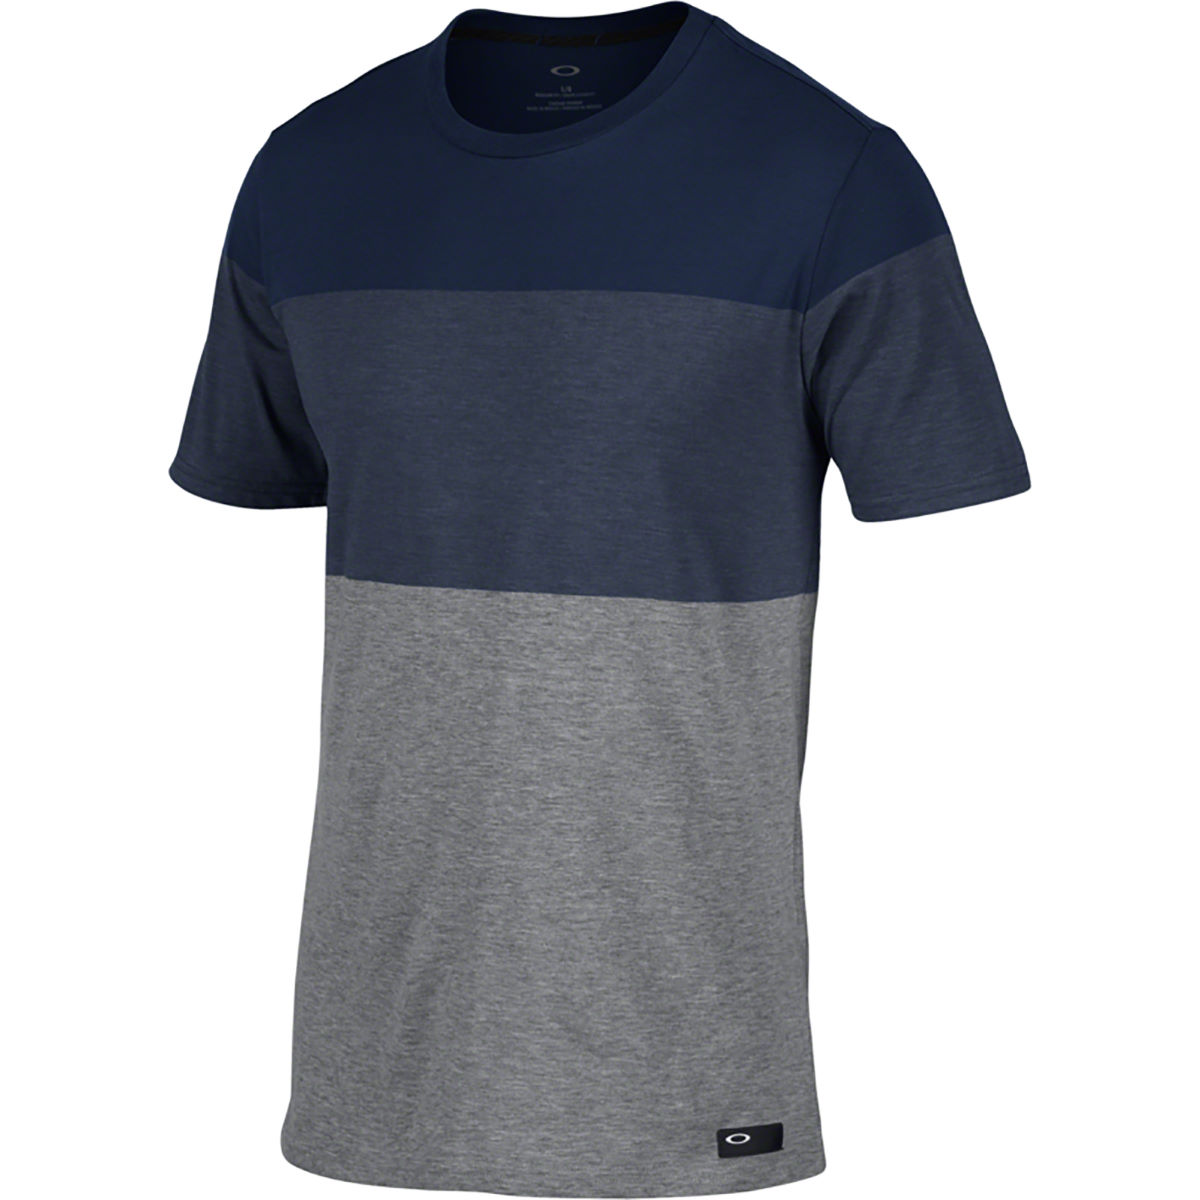 Maillot Oakley Trilogy Knit (manches courtes) - S Fathom T-shirts